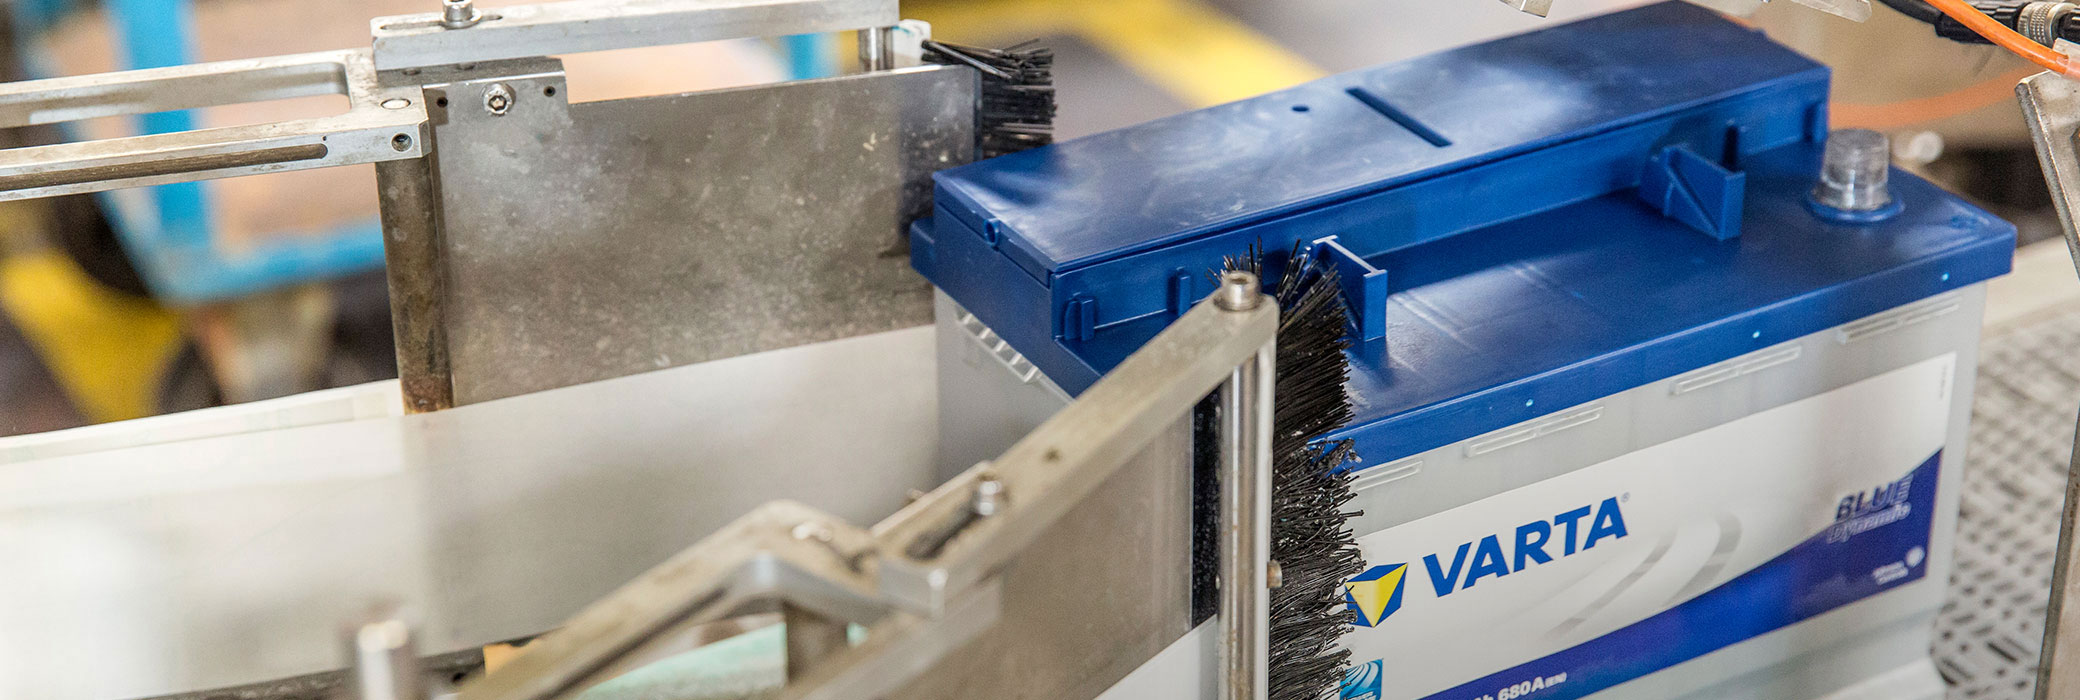 VARTA® battery in a machinery being produced